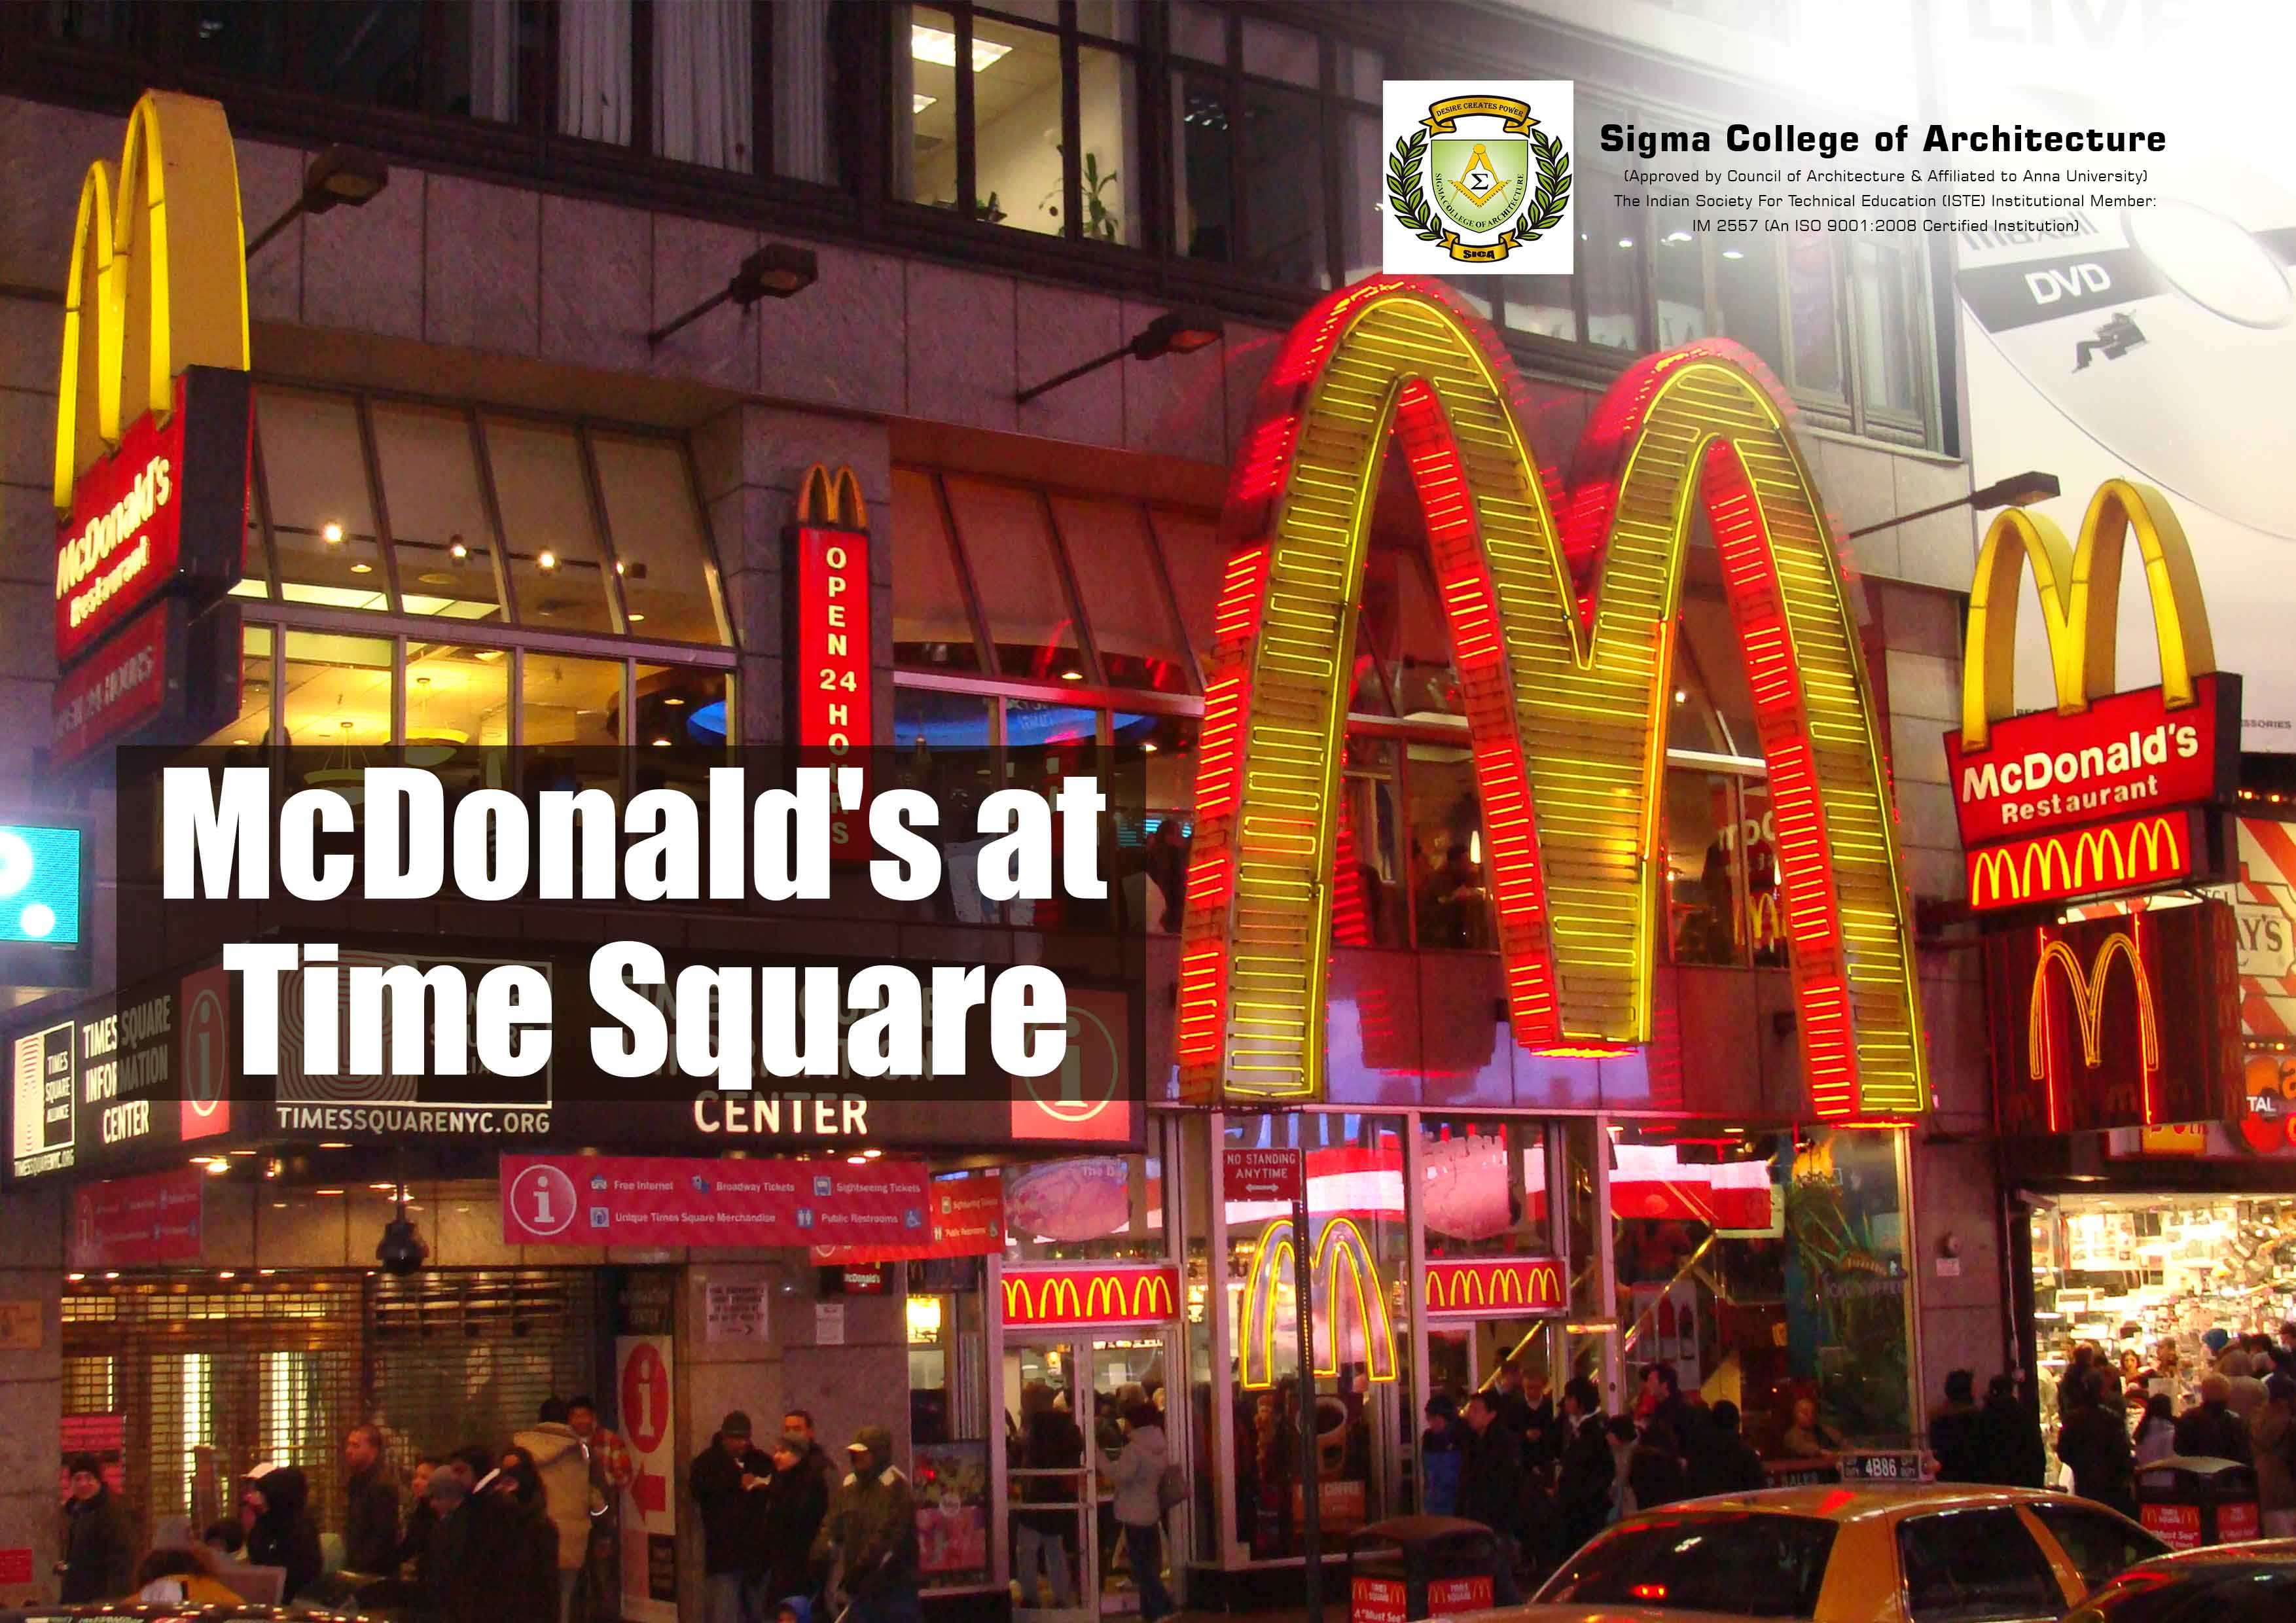 McDonald's at Time Square